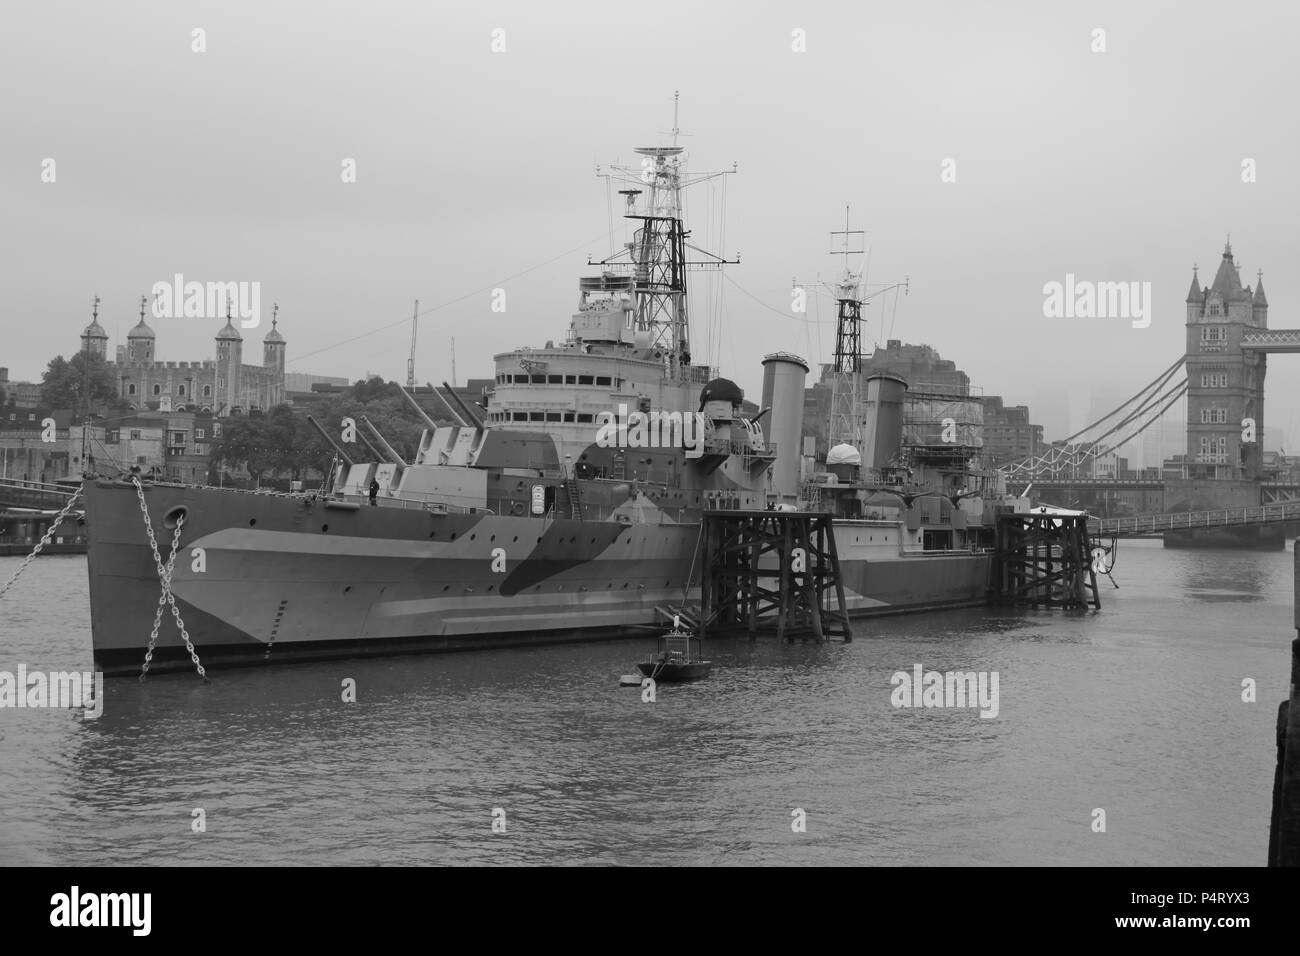 HMS Belfast is a Town-Class light cruiser that was built for the Royal Navy; now permanently moored as a museum on the River Thames, UK, PETER GRANT Stock Photo